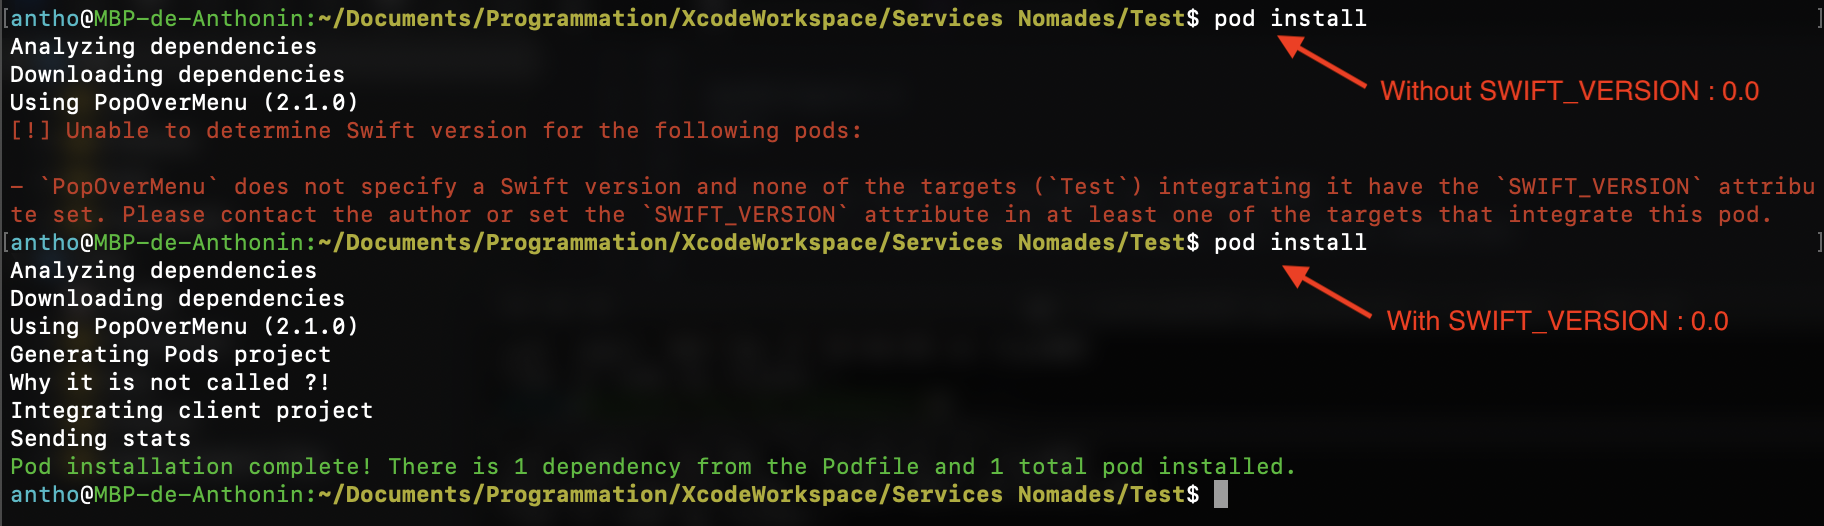 post_install is not called - trying to set Swift version of pods